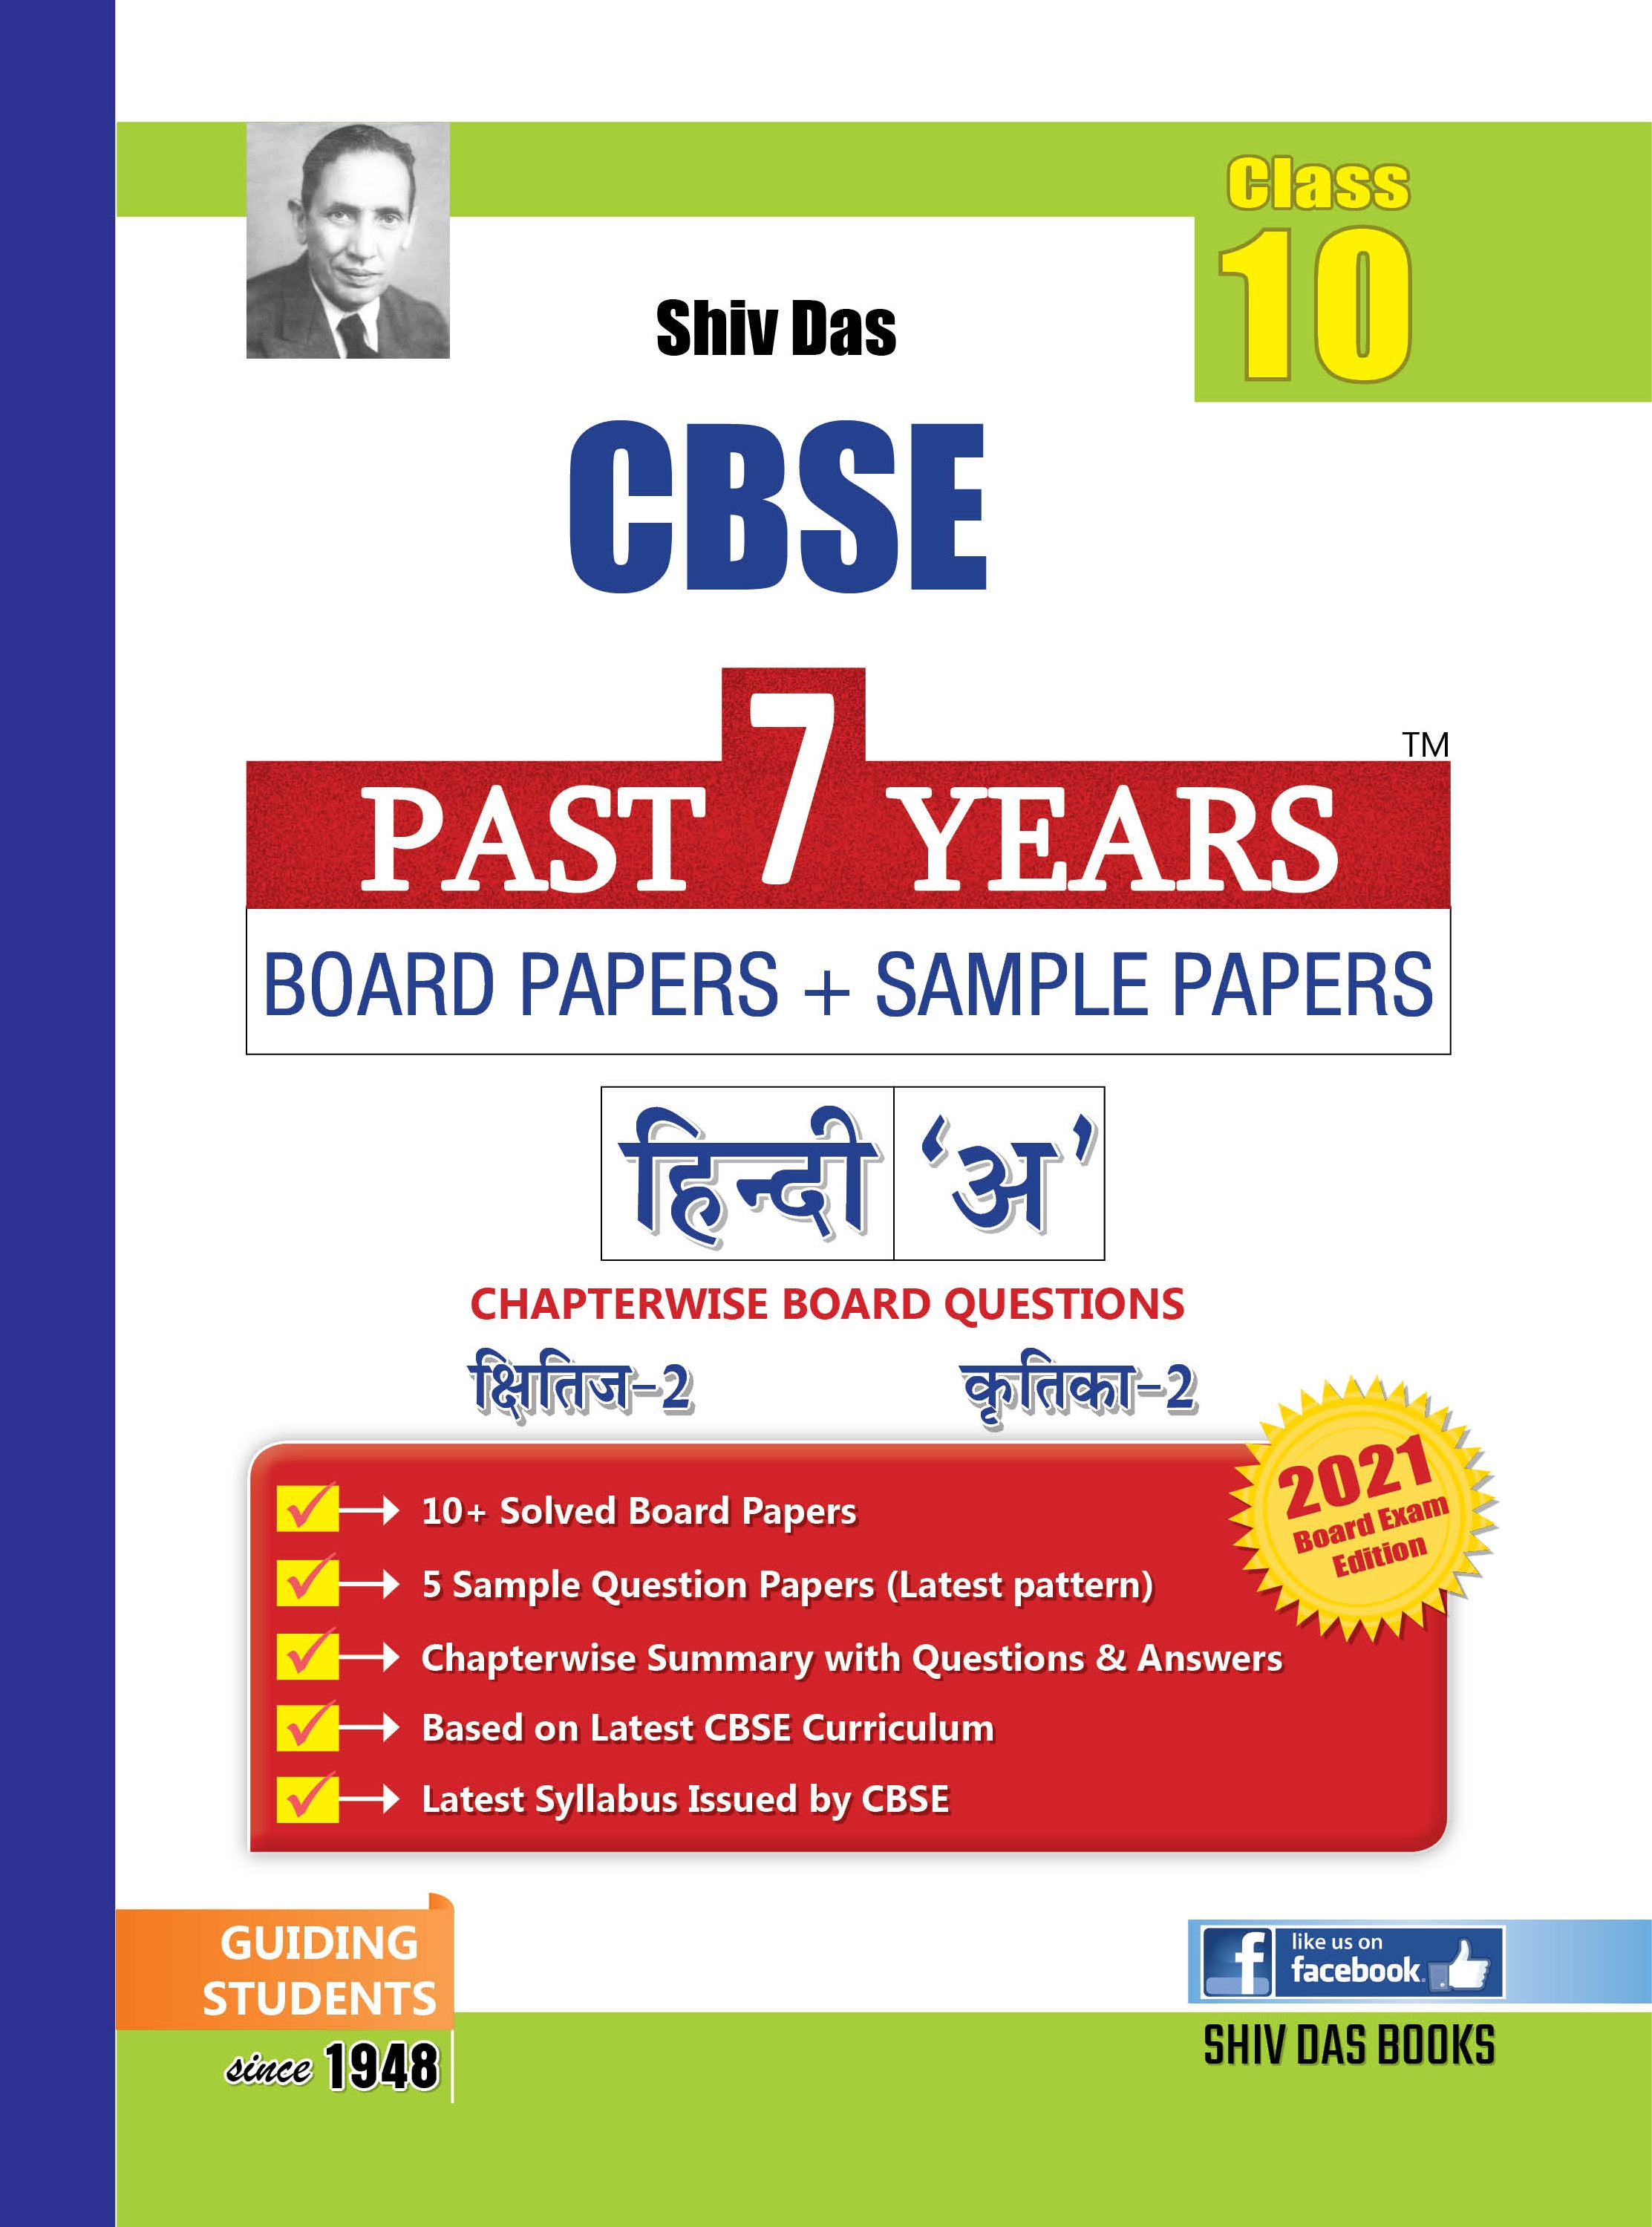 CBSE Past 7 Years Solved Board Papers+Sample Papers for Class 10 Hindi-A (2020 Board Exam Edition)